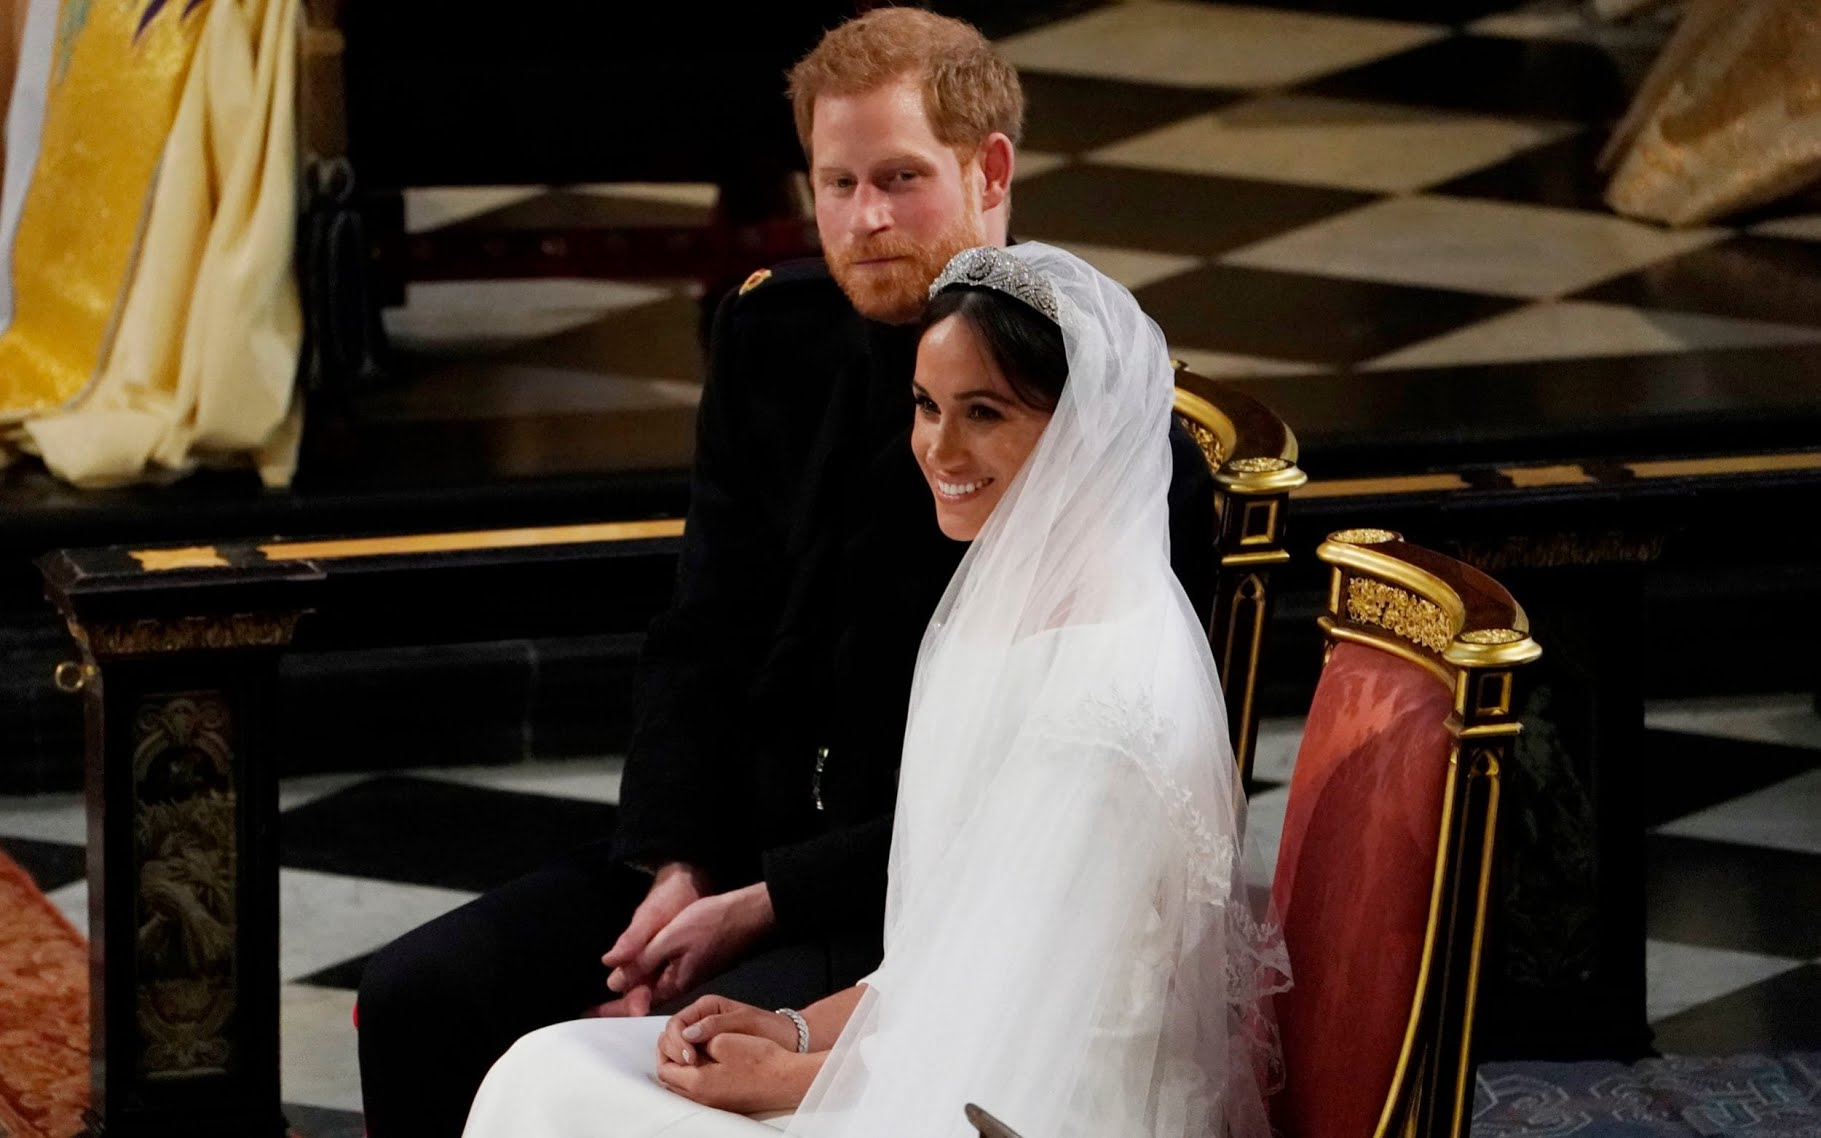 Prince Harry and Meghan Markle beam with joy in St George's Chapel